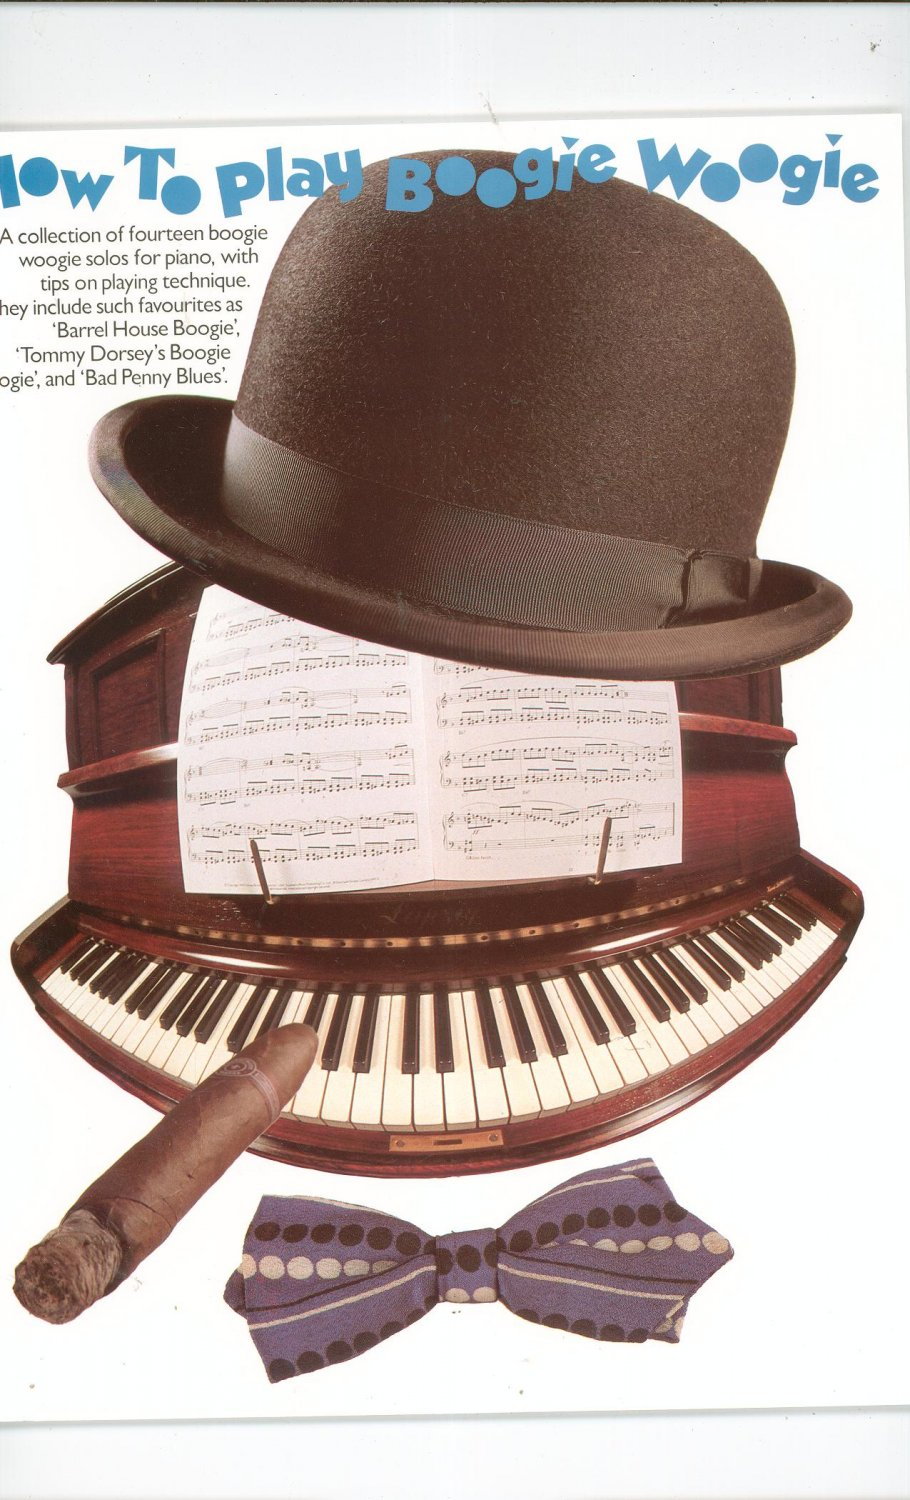 How To Play The Boogie Woogie Solos For Piano 0711903263